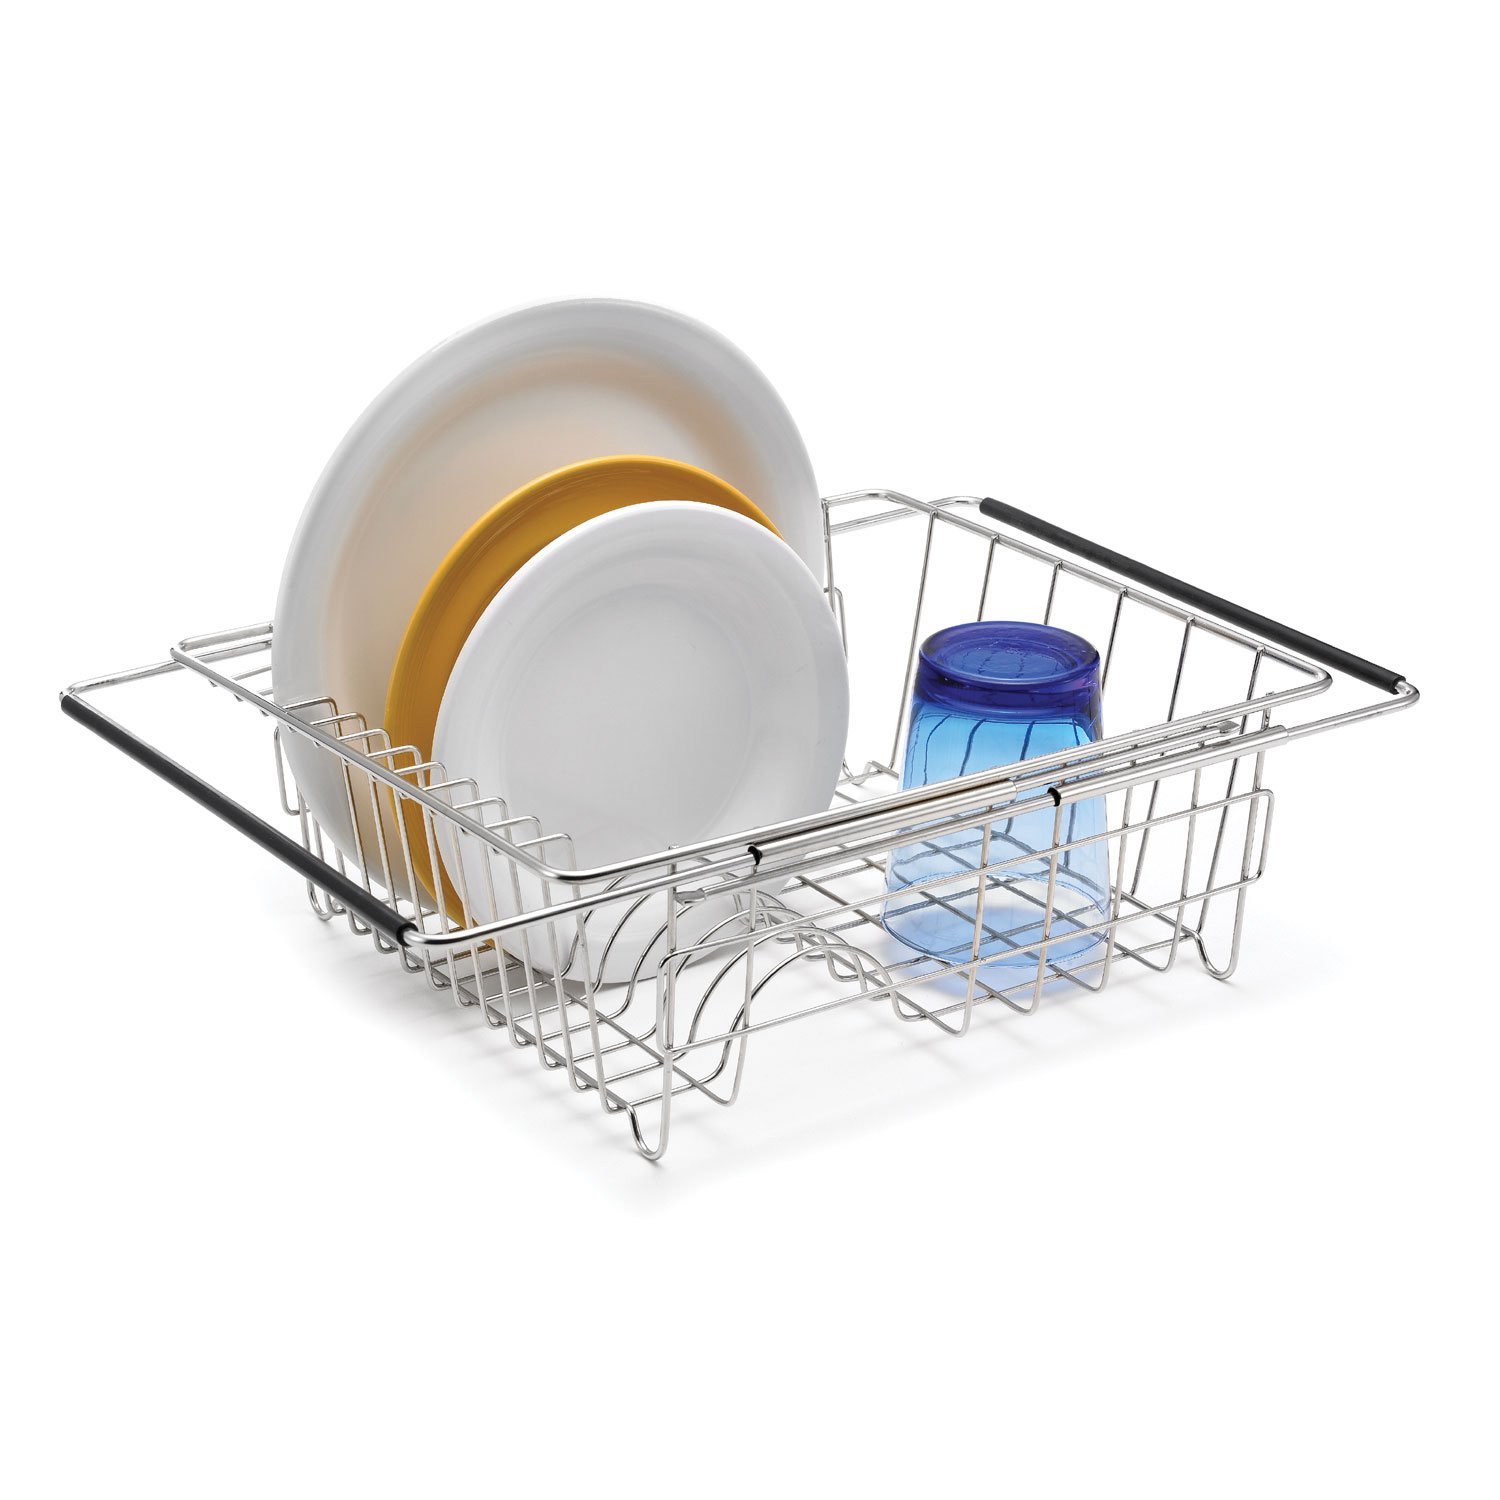 Polder 6216-75RM In-Sink/Over-Sink Stainless Steel Dish Rack, 13.75'' x 11.5'' x 5''